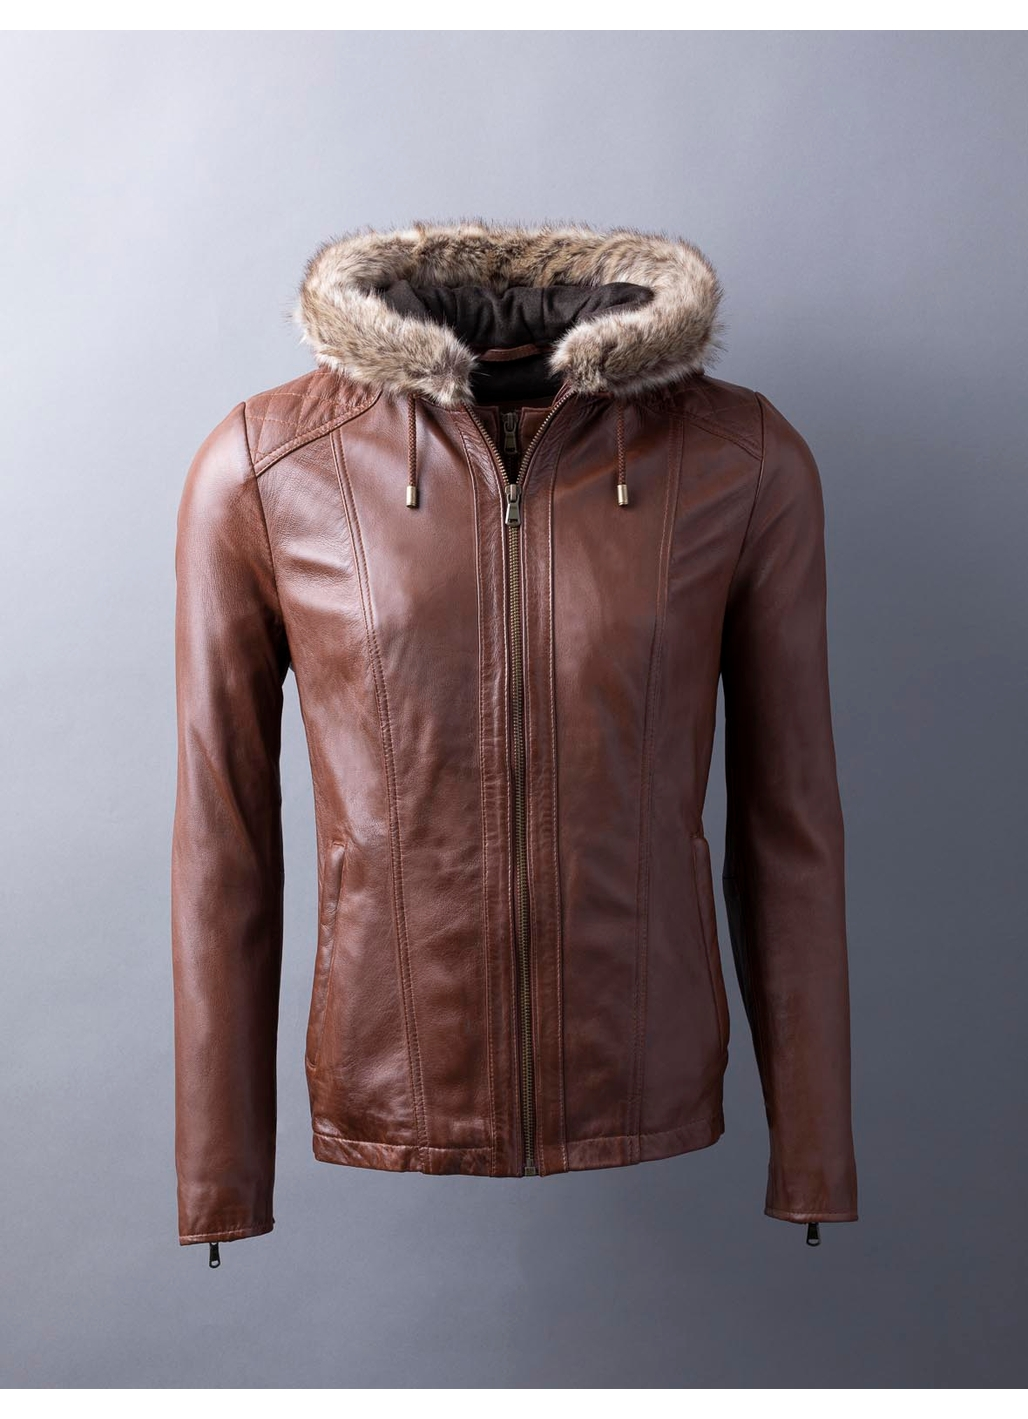 Applethwaite Hooded Leather Jacket in Cognac